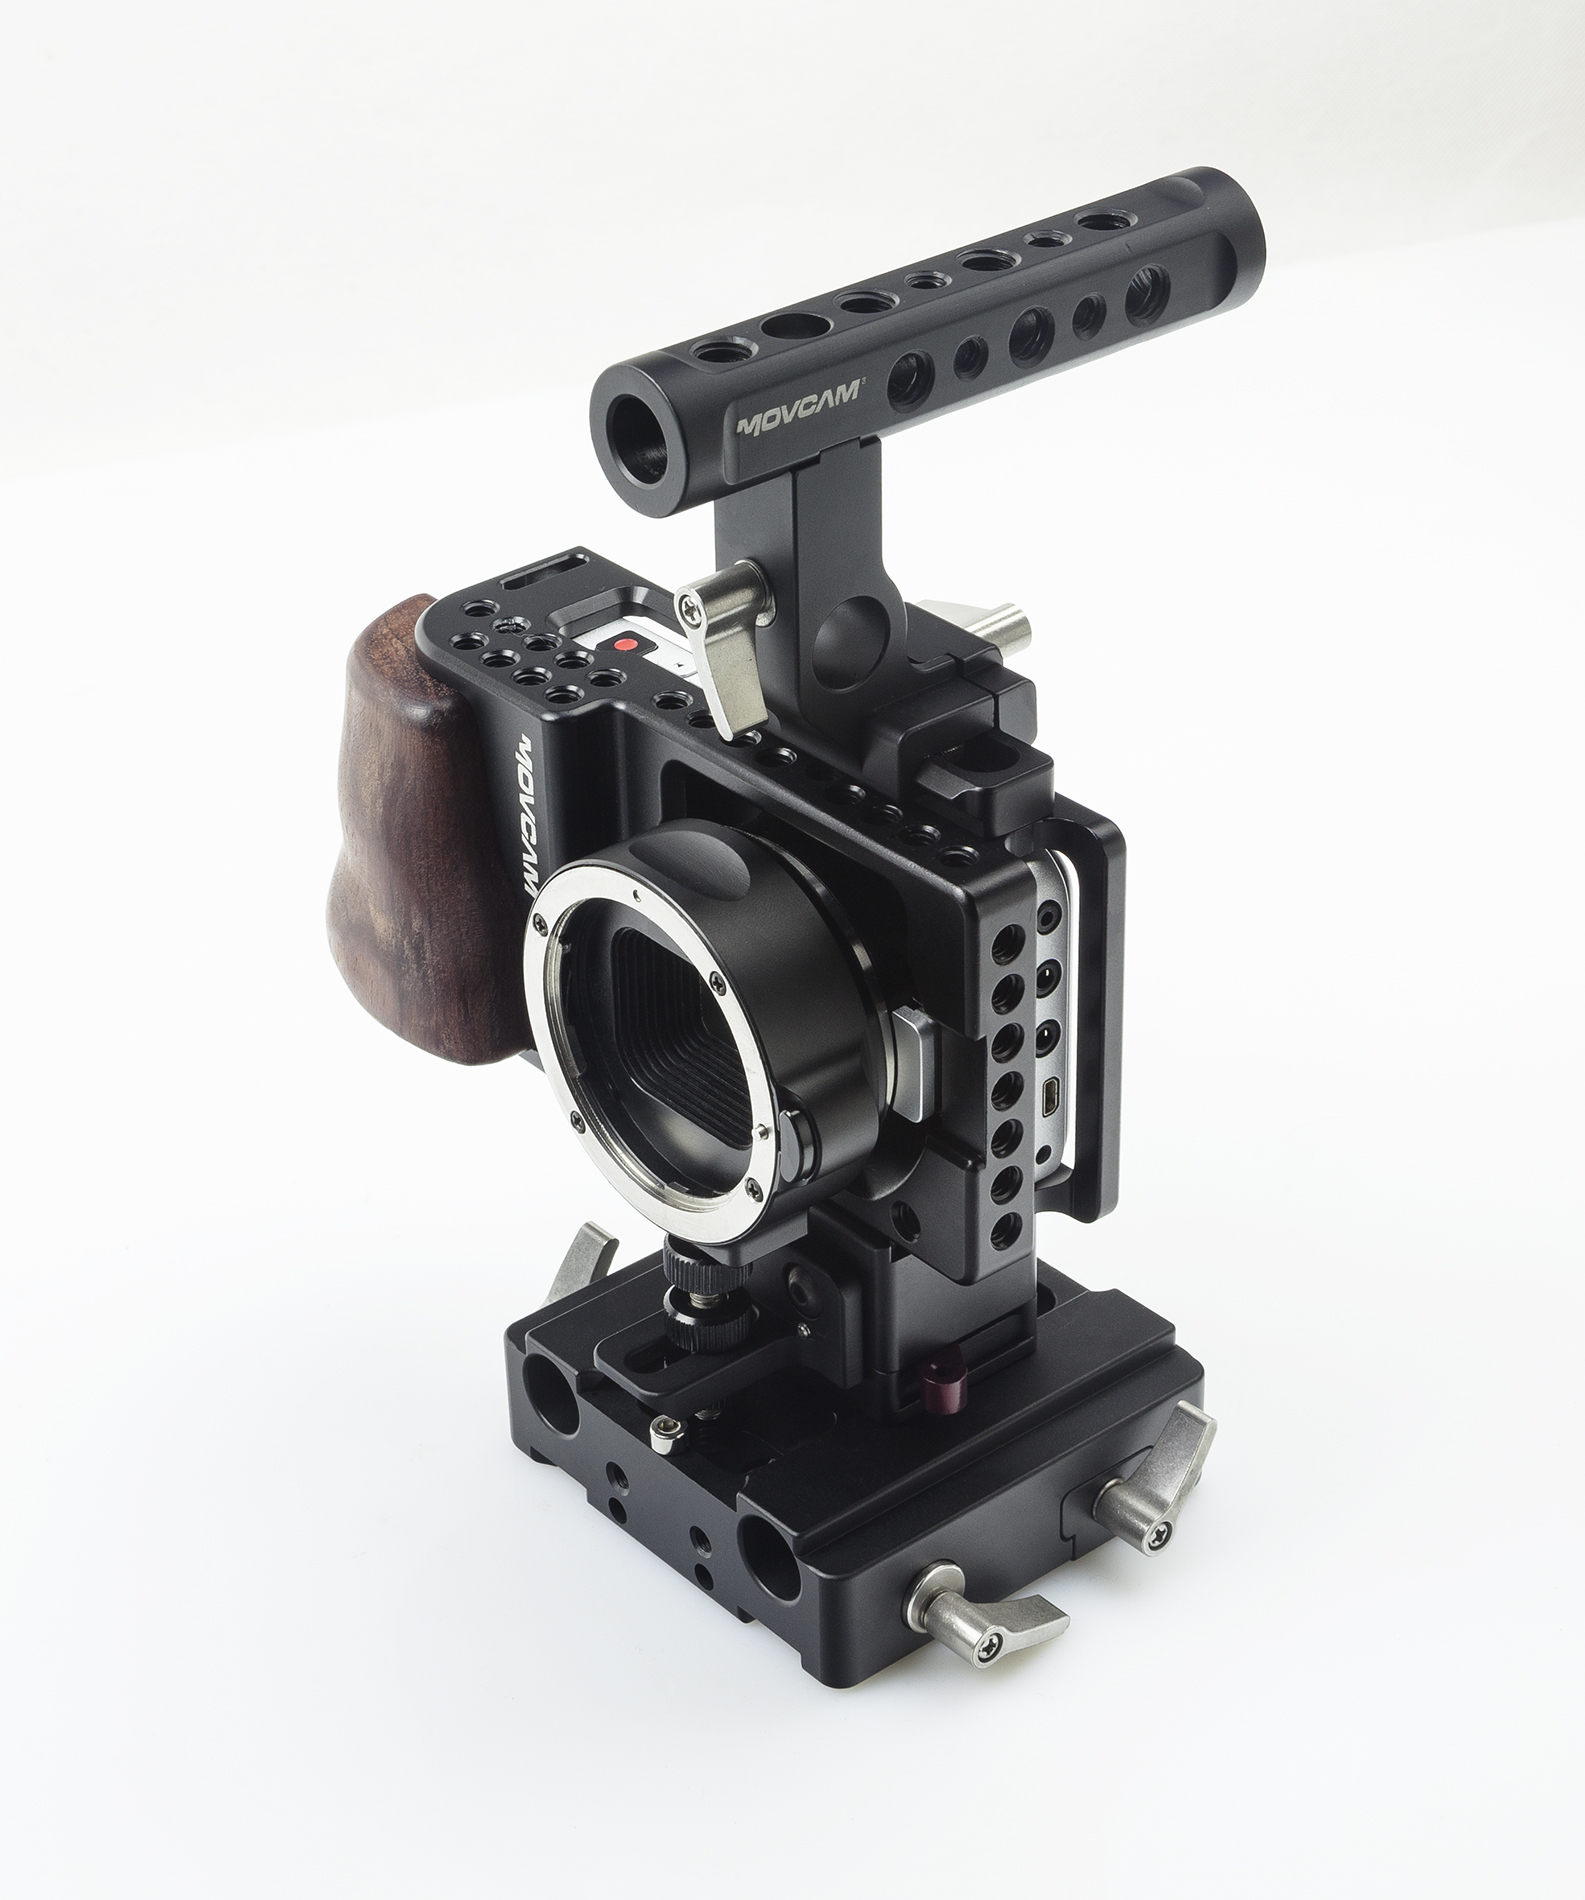 Movcam mo/mo fu kang bmpcc kit/cage rabbit cage fuselage surrounded/put on the handle/hdmi protection